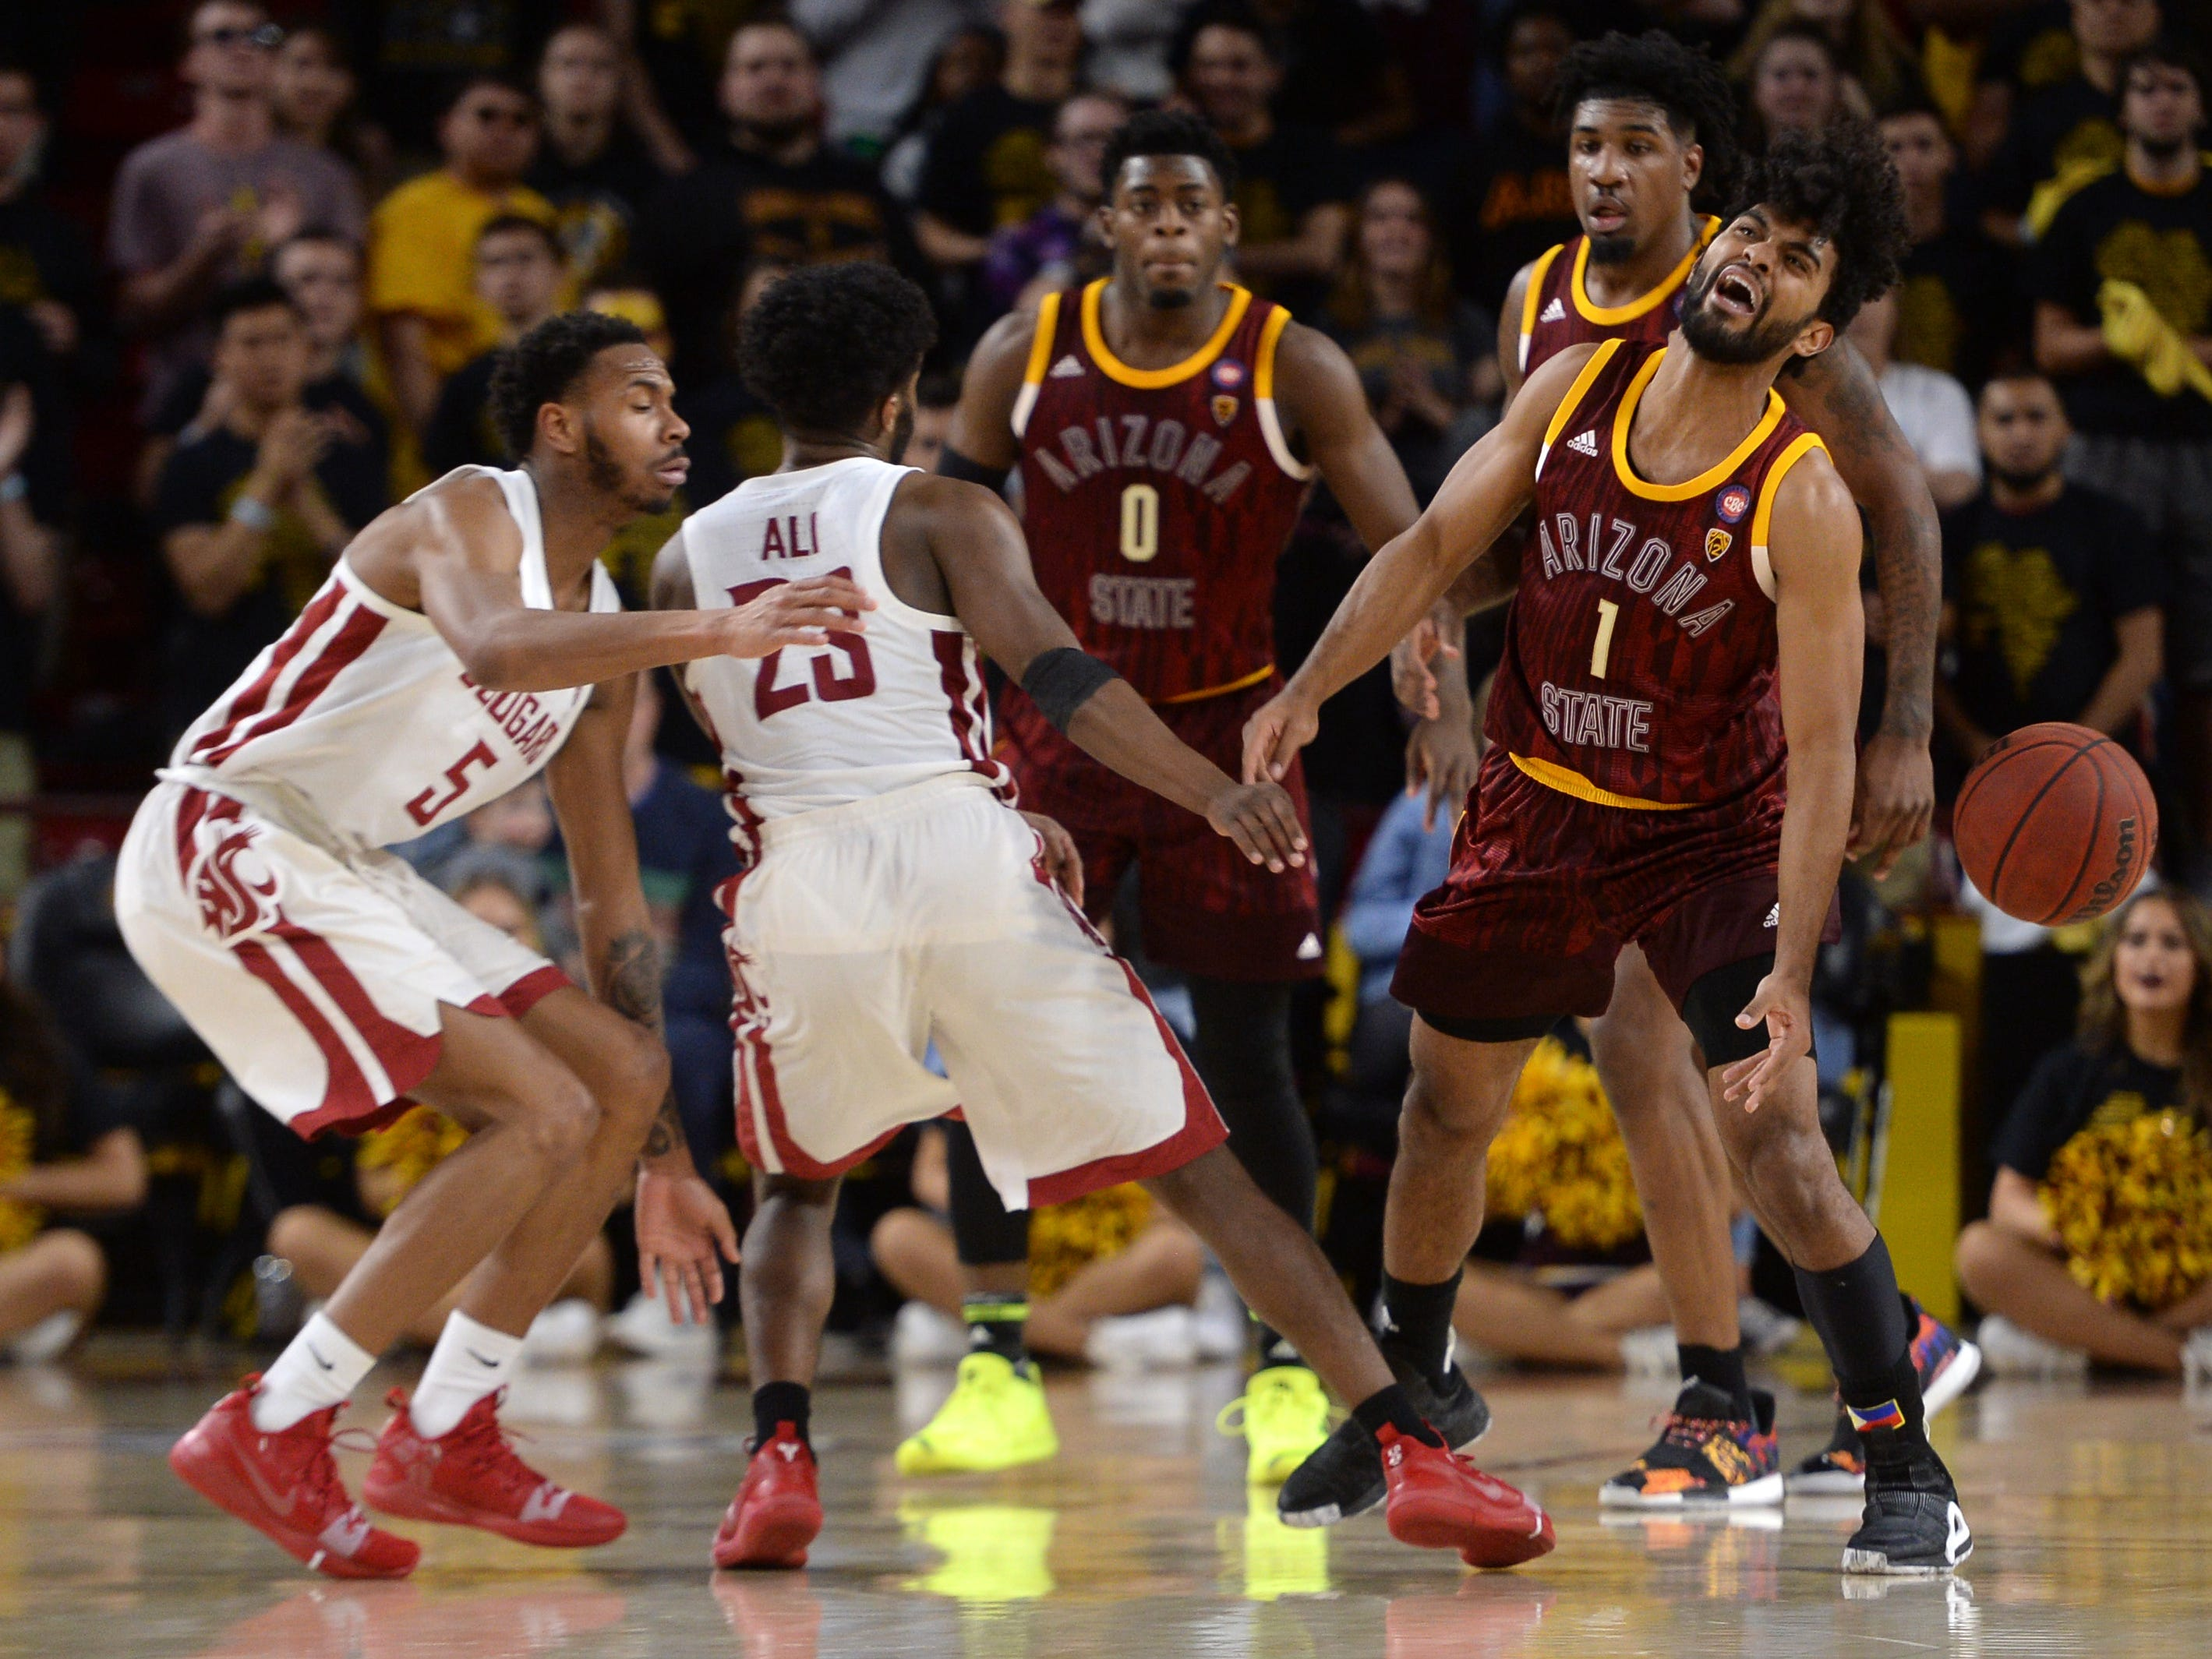 Feb 7, 2019; Tempe, AZ, USA; Arizona State Sun Devils guard Remy Martin (1) loses control of the ball against the Washington State Cougars during the second half at Wells Fargo Arena (AZ).